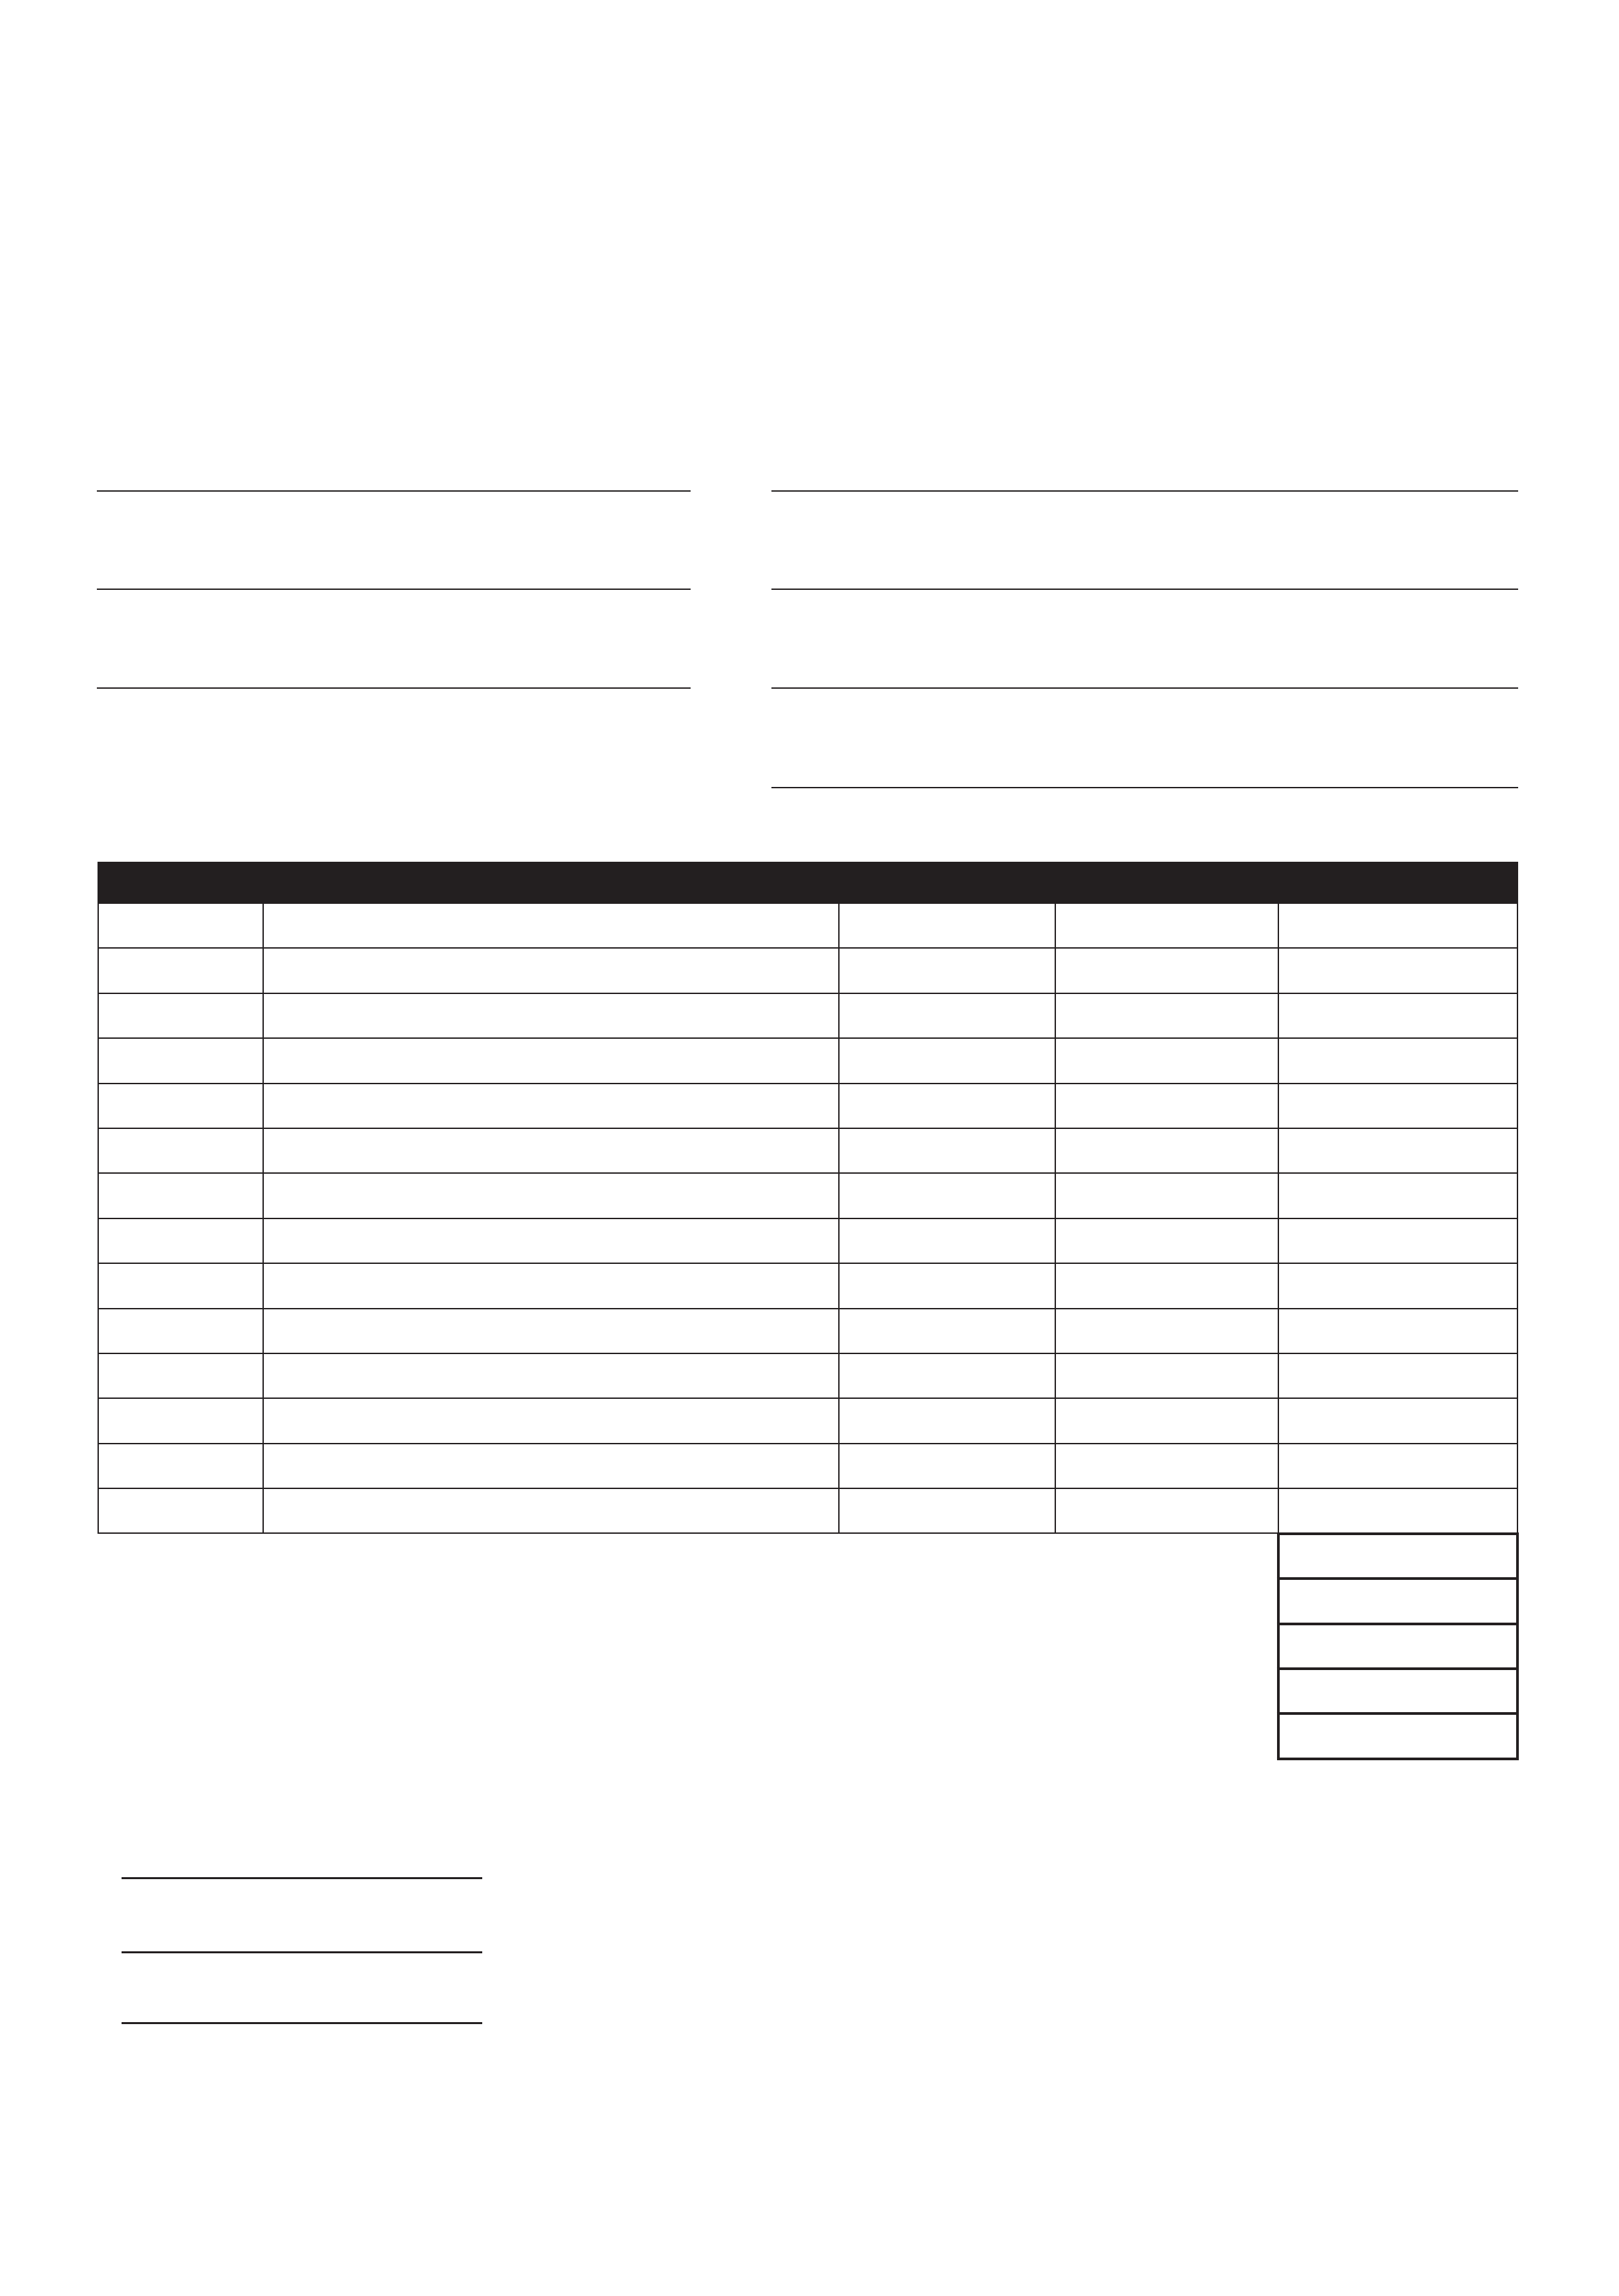 It is a graphic of Printable Order Forms regarding t shirt